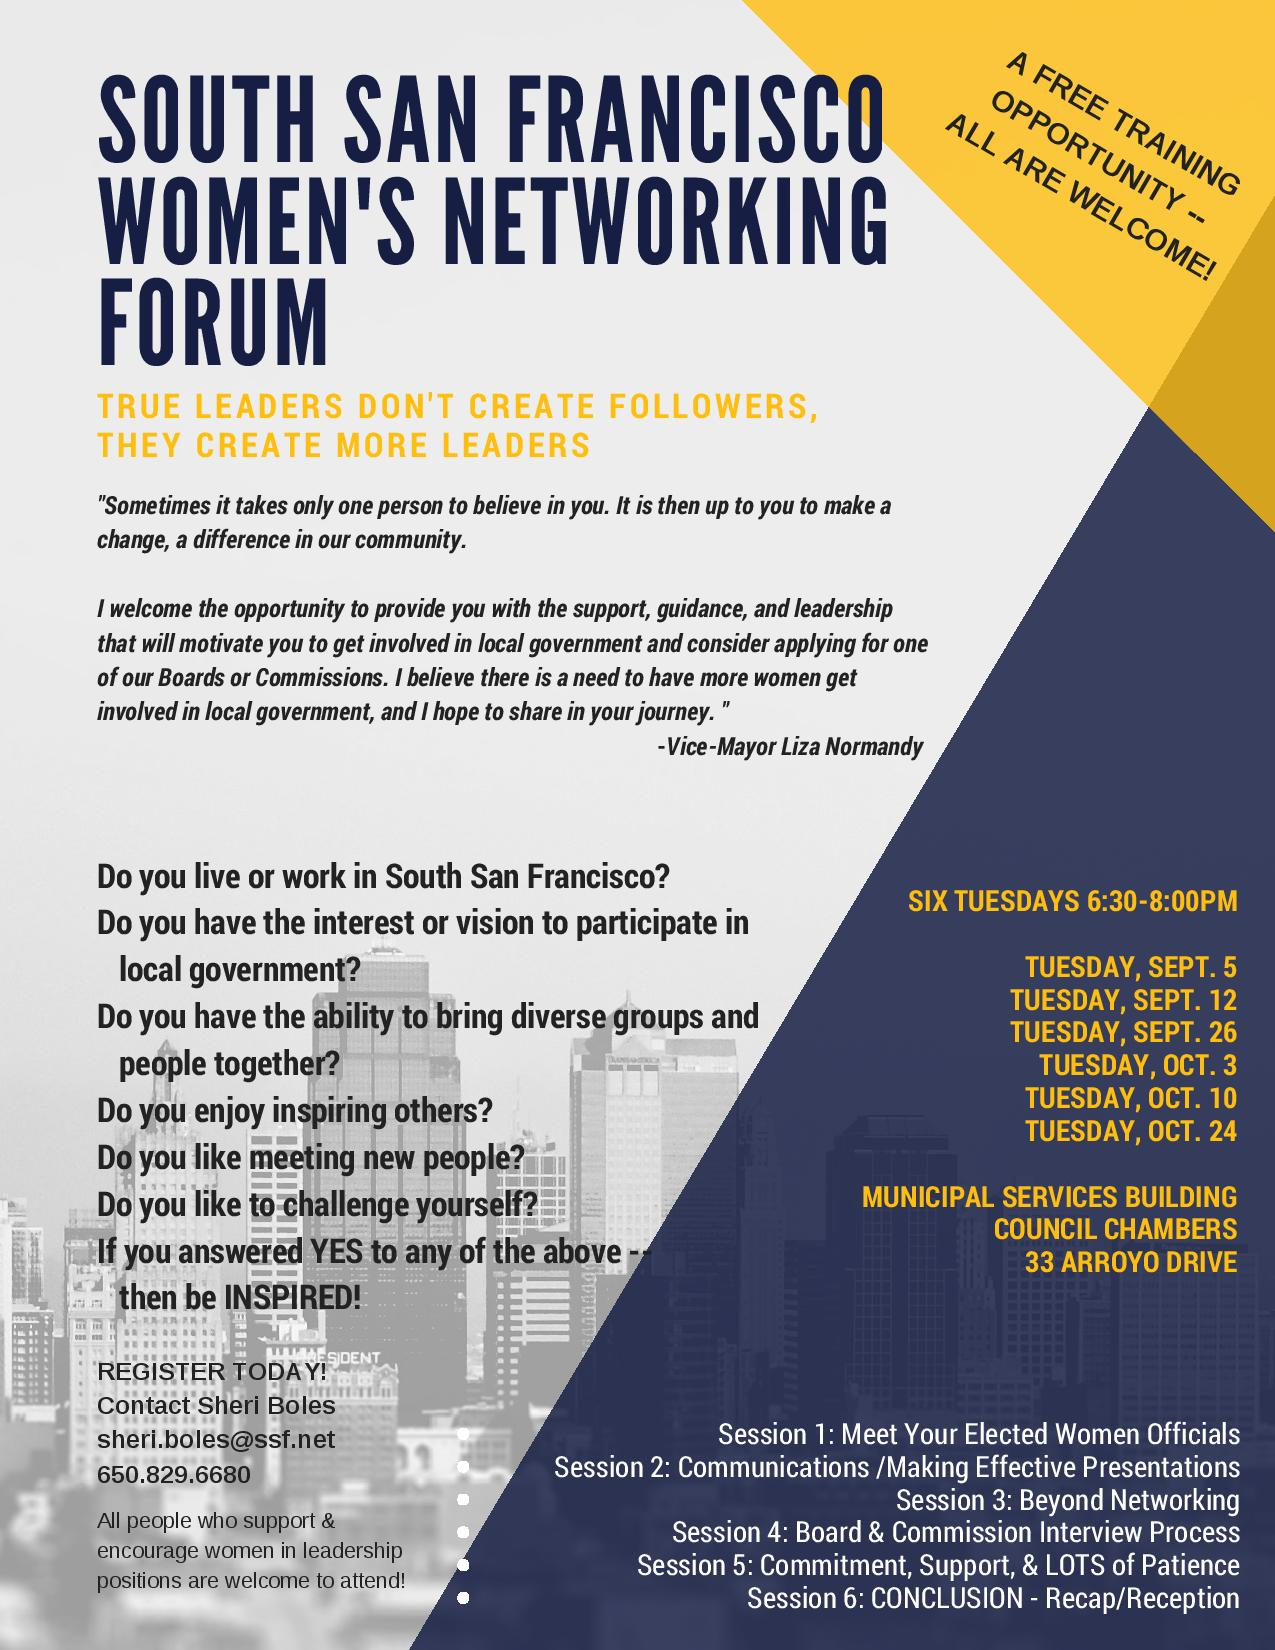 FREE SSF Women's Networking Forum Series Announced by Vice Mayor Liza Normandy